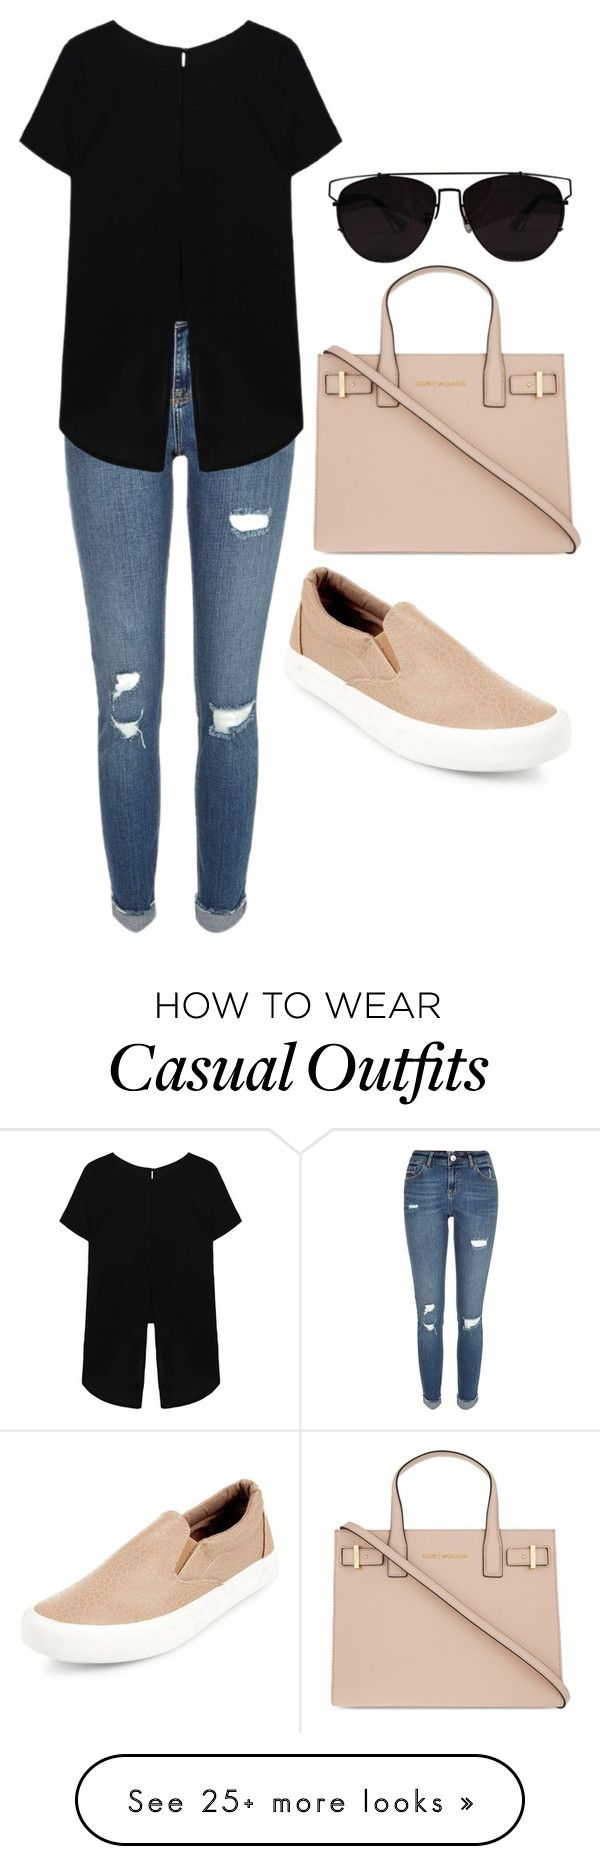 Casual by heart-break on Polyvore featuring River Island, Kurt Geiger and Retrò